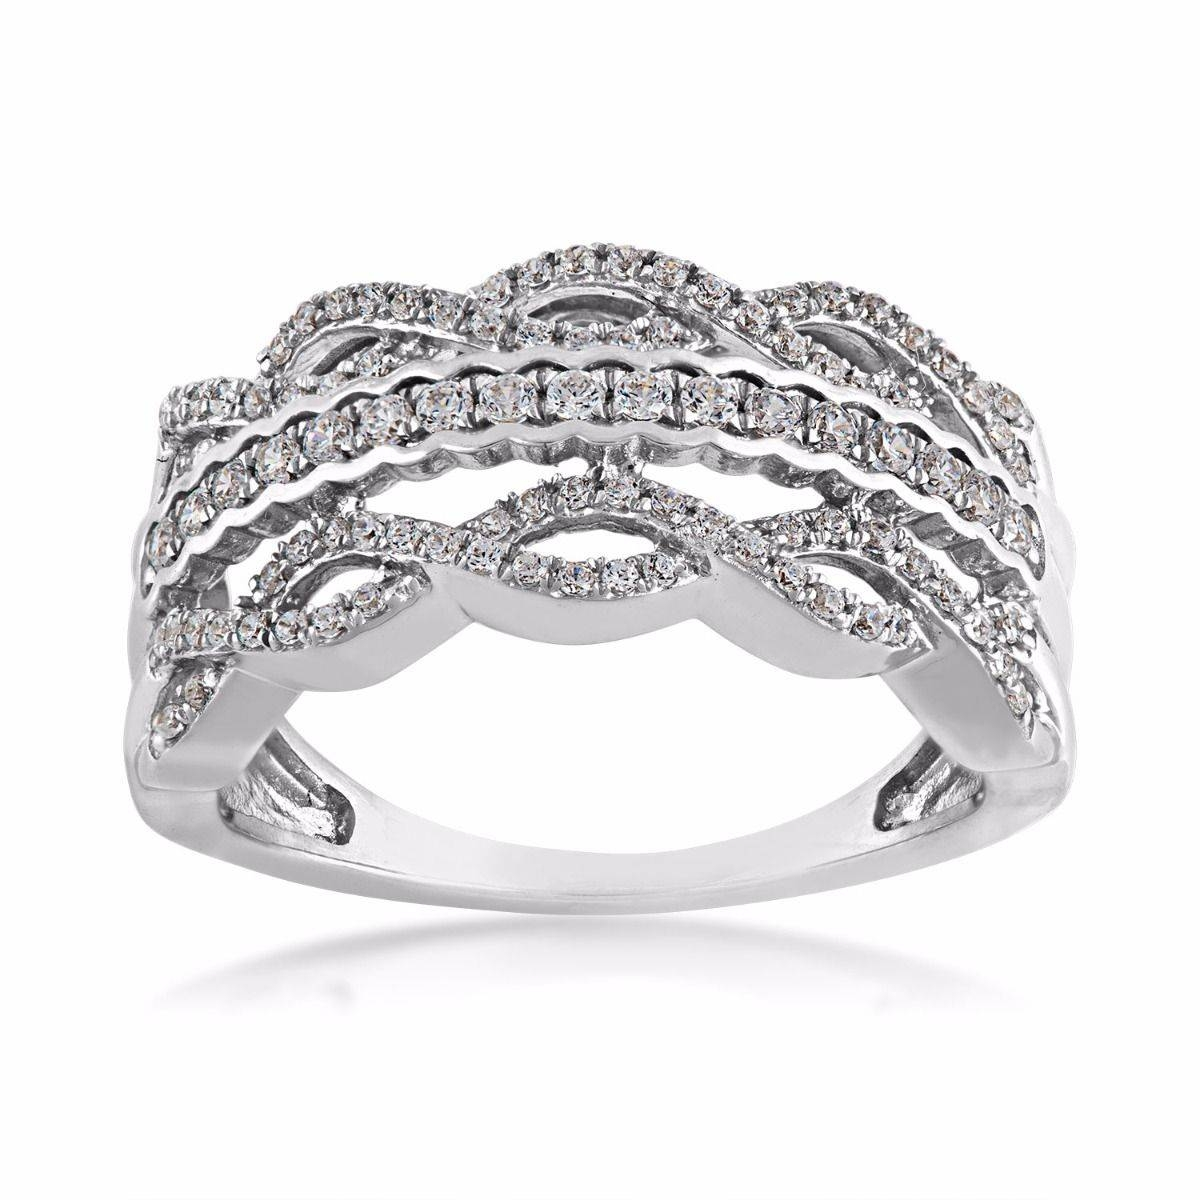 Ladies Diamond Anniversary Ring | Riddle's Jewelry In Most Popular Gold Diamond Anniversary Rings (View 20 of 25)